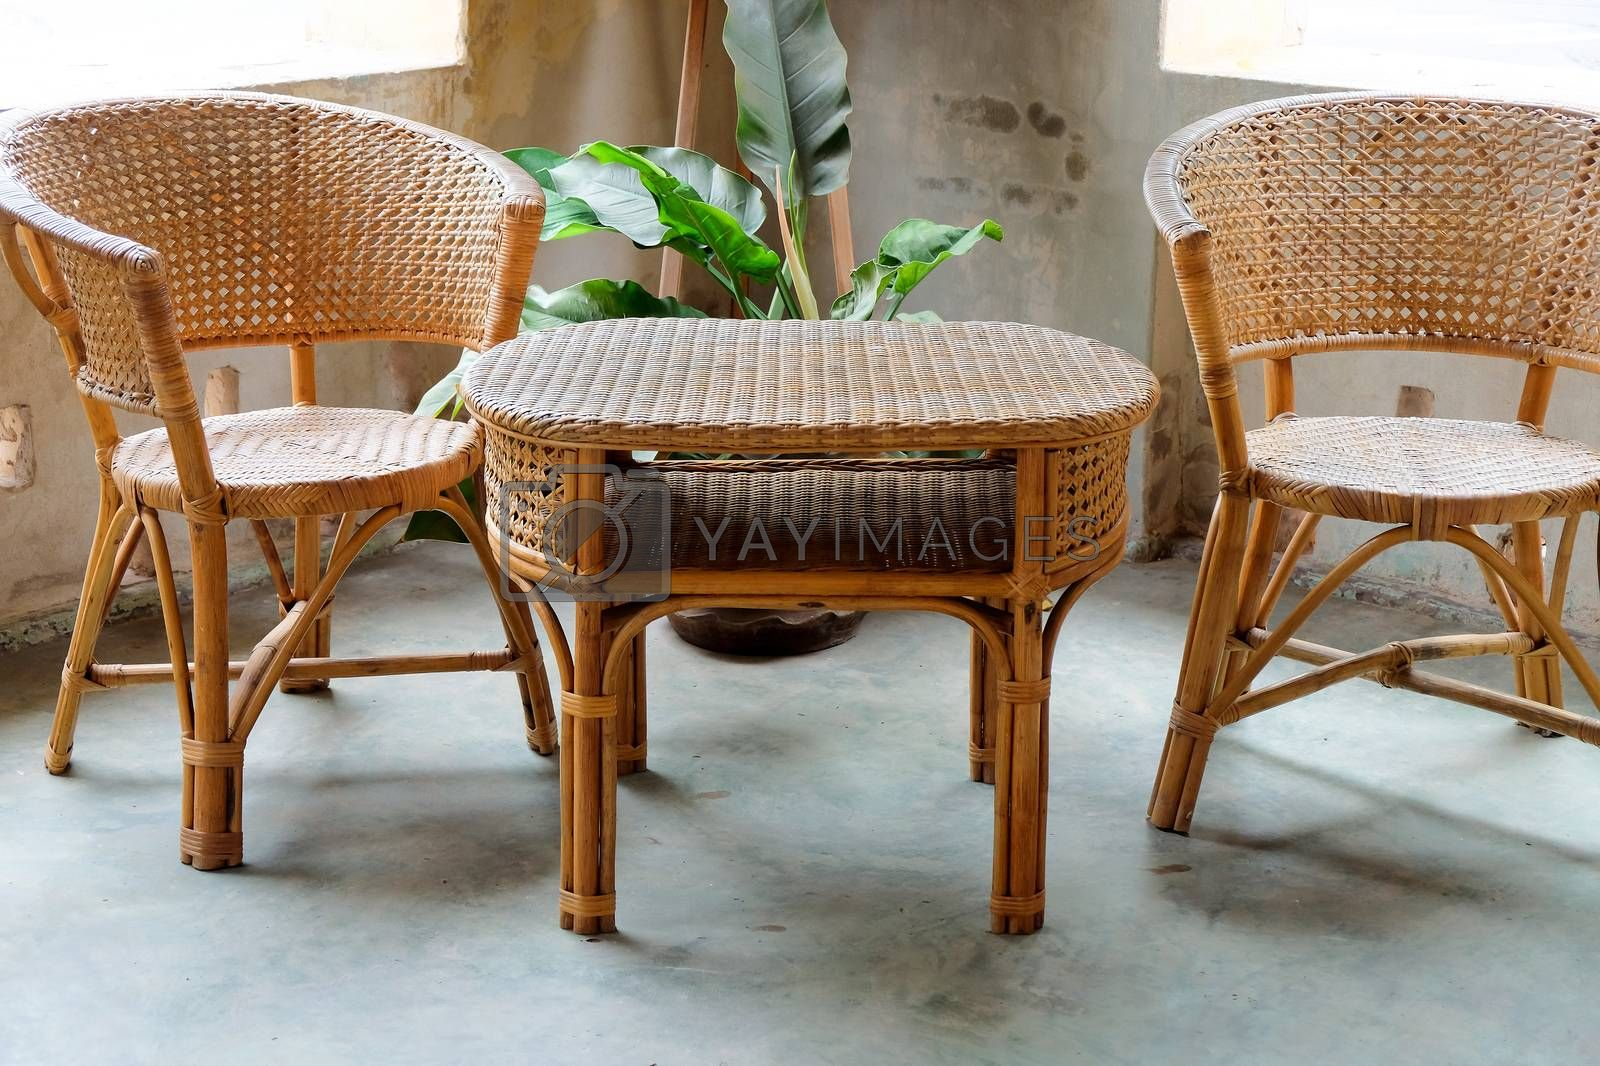 Image of Interior decorative for living area with rattan armchair and plants